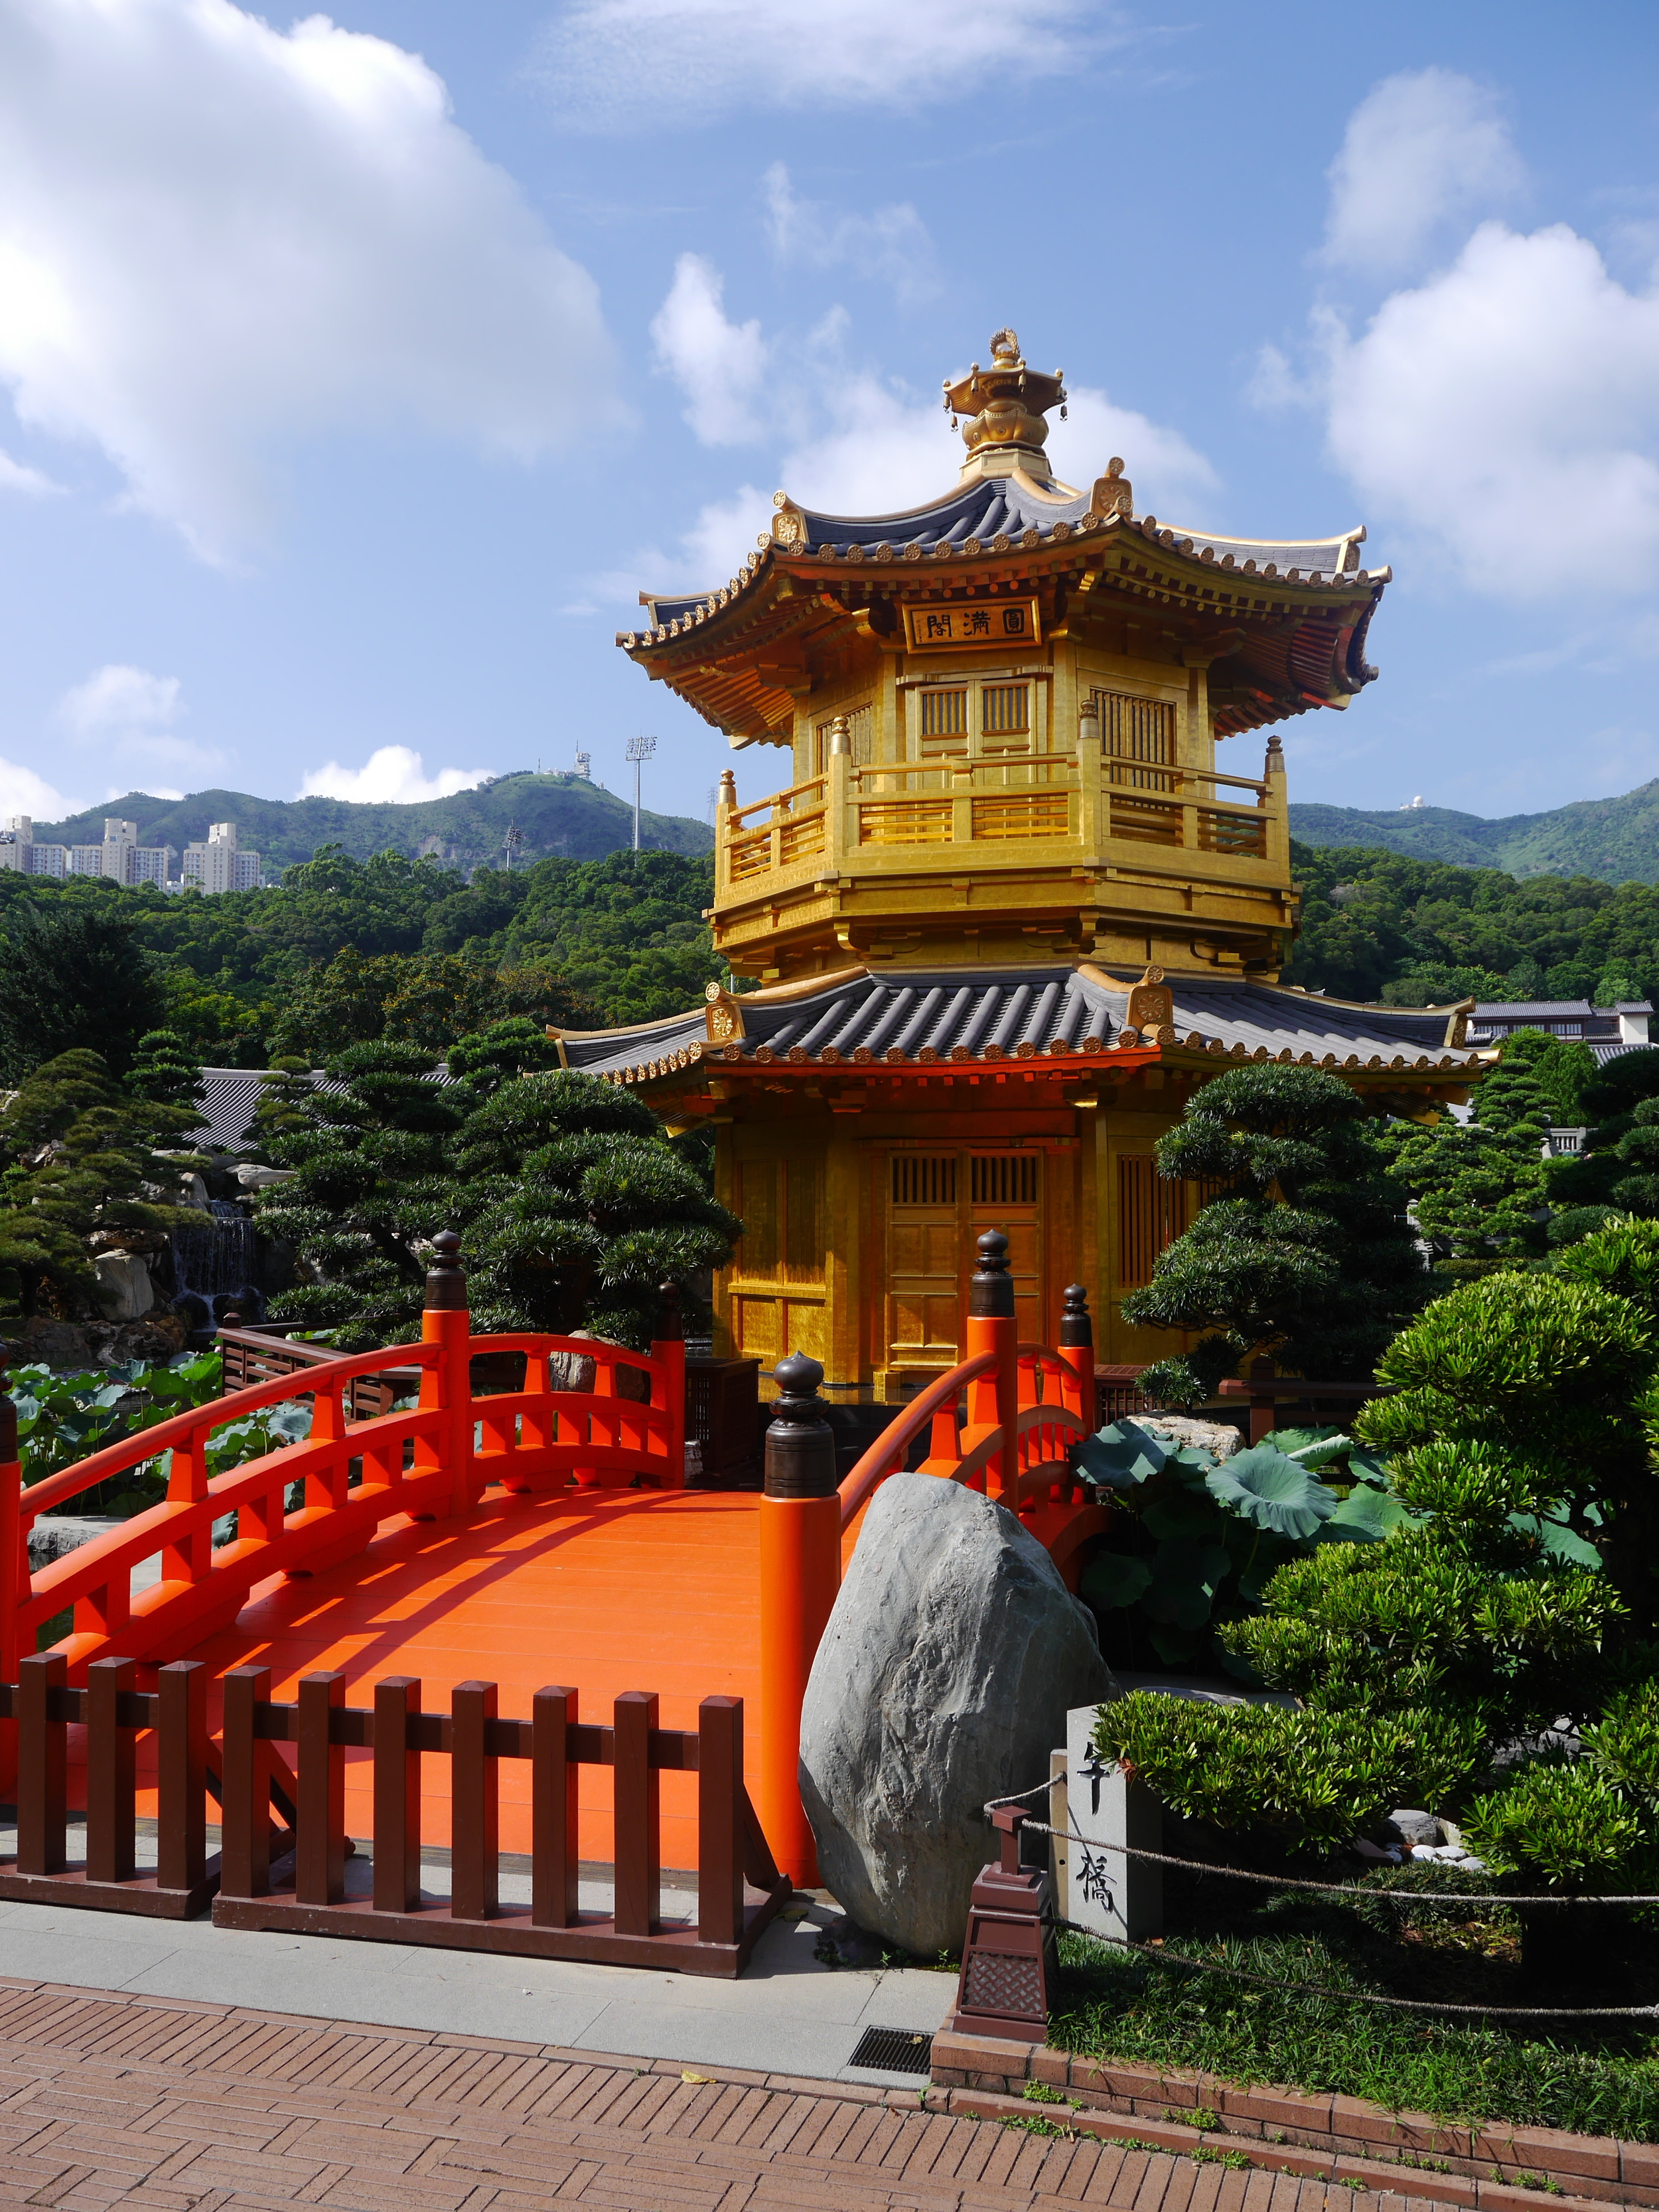 A life size (and much more colorful) example of Chinese architecture.